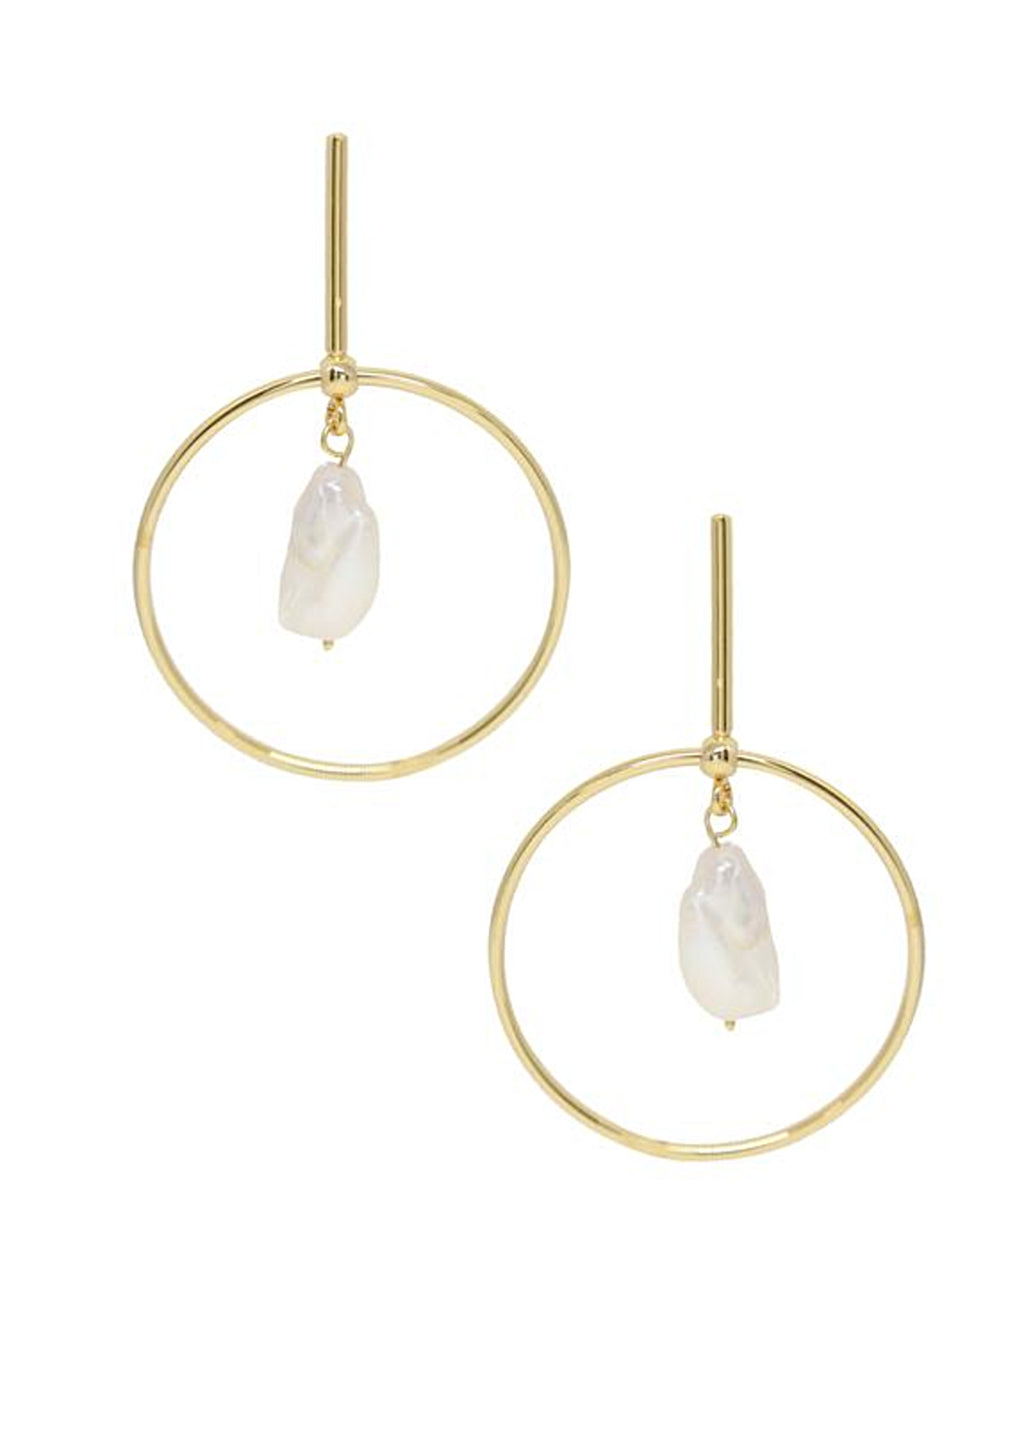 ETTIKA MODERN GOLD AND FRESHWATER PEARL EARRINGS